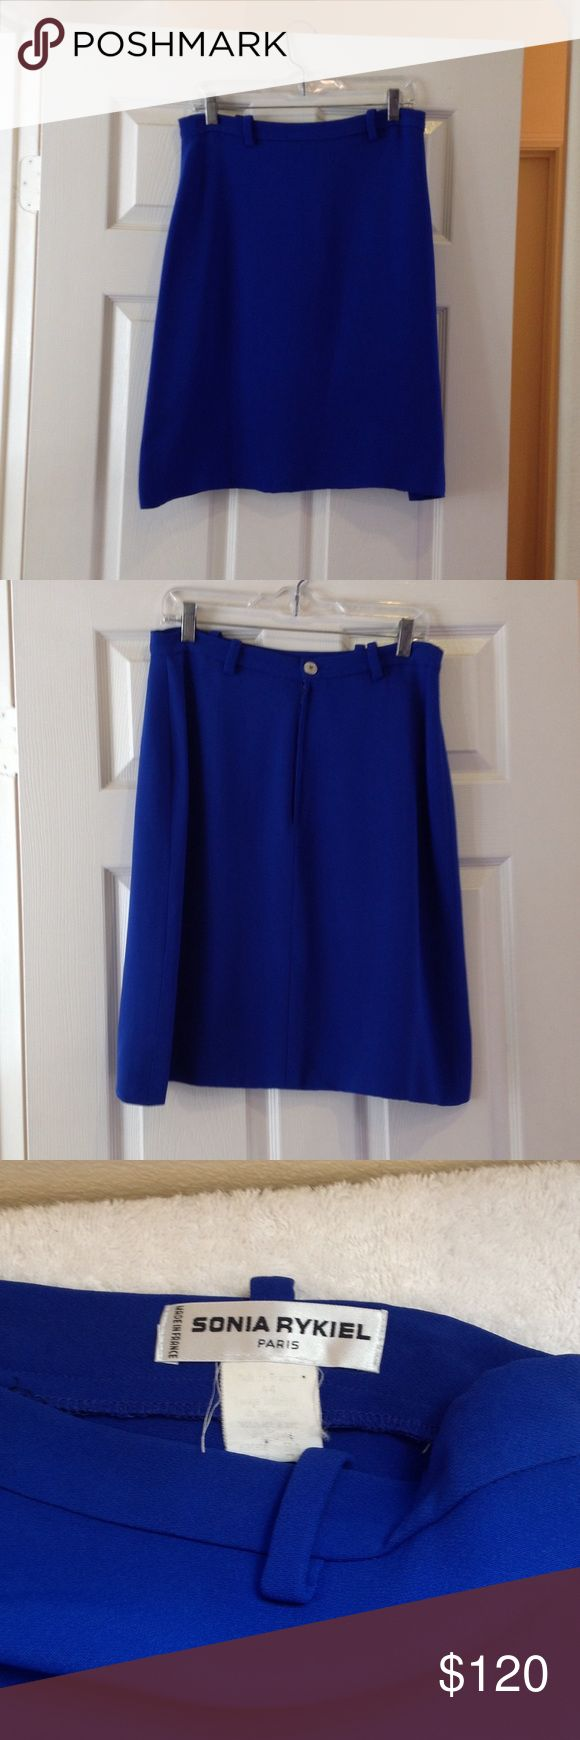 "Sonia Rykiel cobalt blue skirt. Size 44 euro. Sonia Rykiel women's cobalt blue skirt. 54% rayon; 43% viscose. Zipper and button closure in back. 31"" waist; 23.5"" length. Size 44 euro. Sonia Rykiel Skirts"